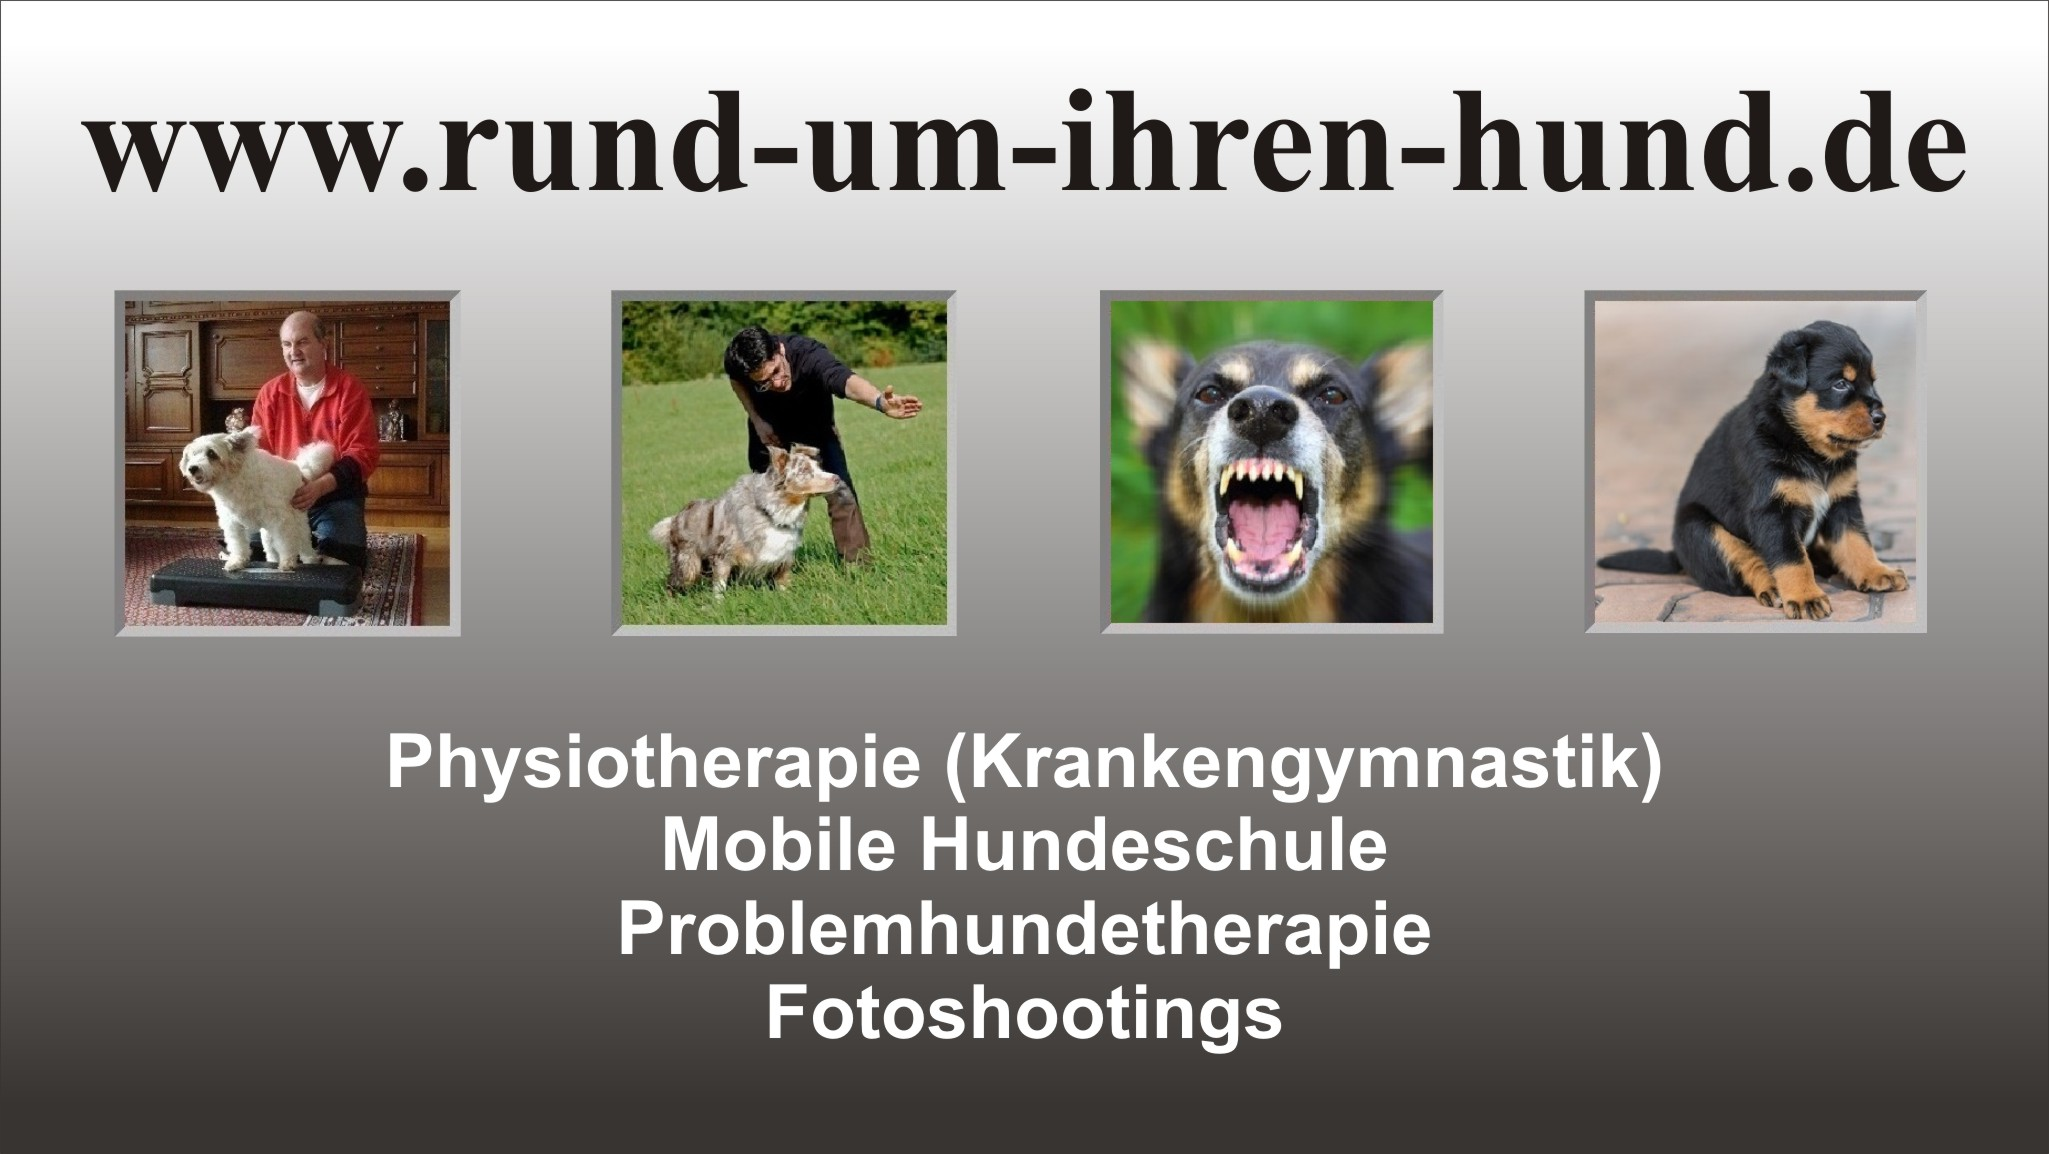 Infos zu Hundephysiotherapie, mobile Hundeschule, Problemhundetherapie, Fotoshootings